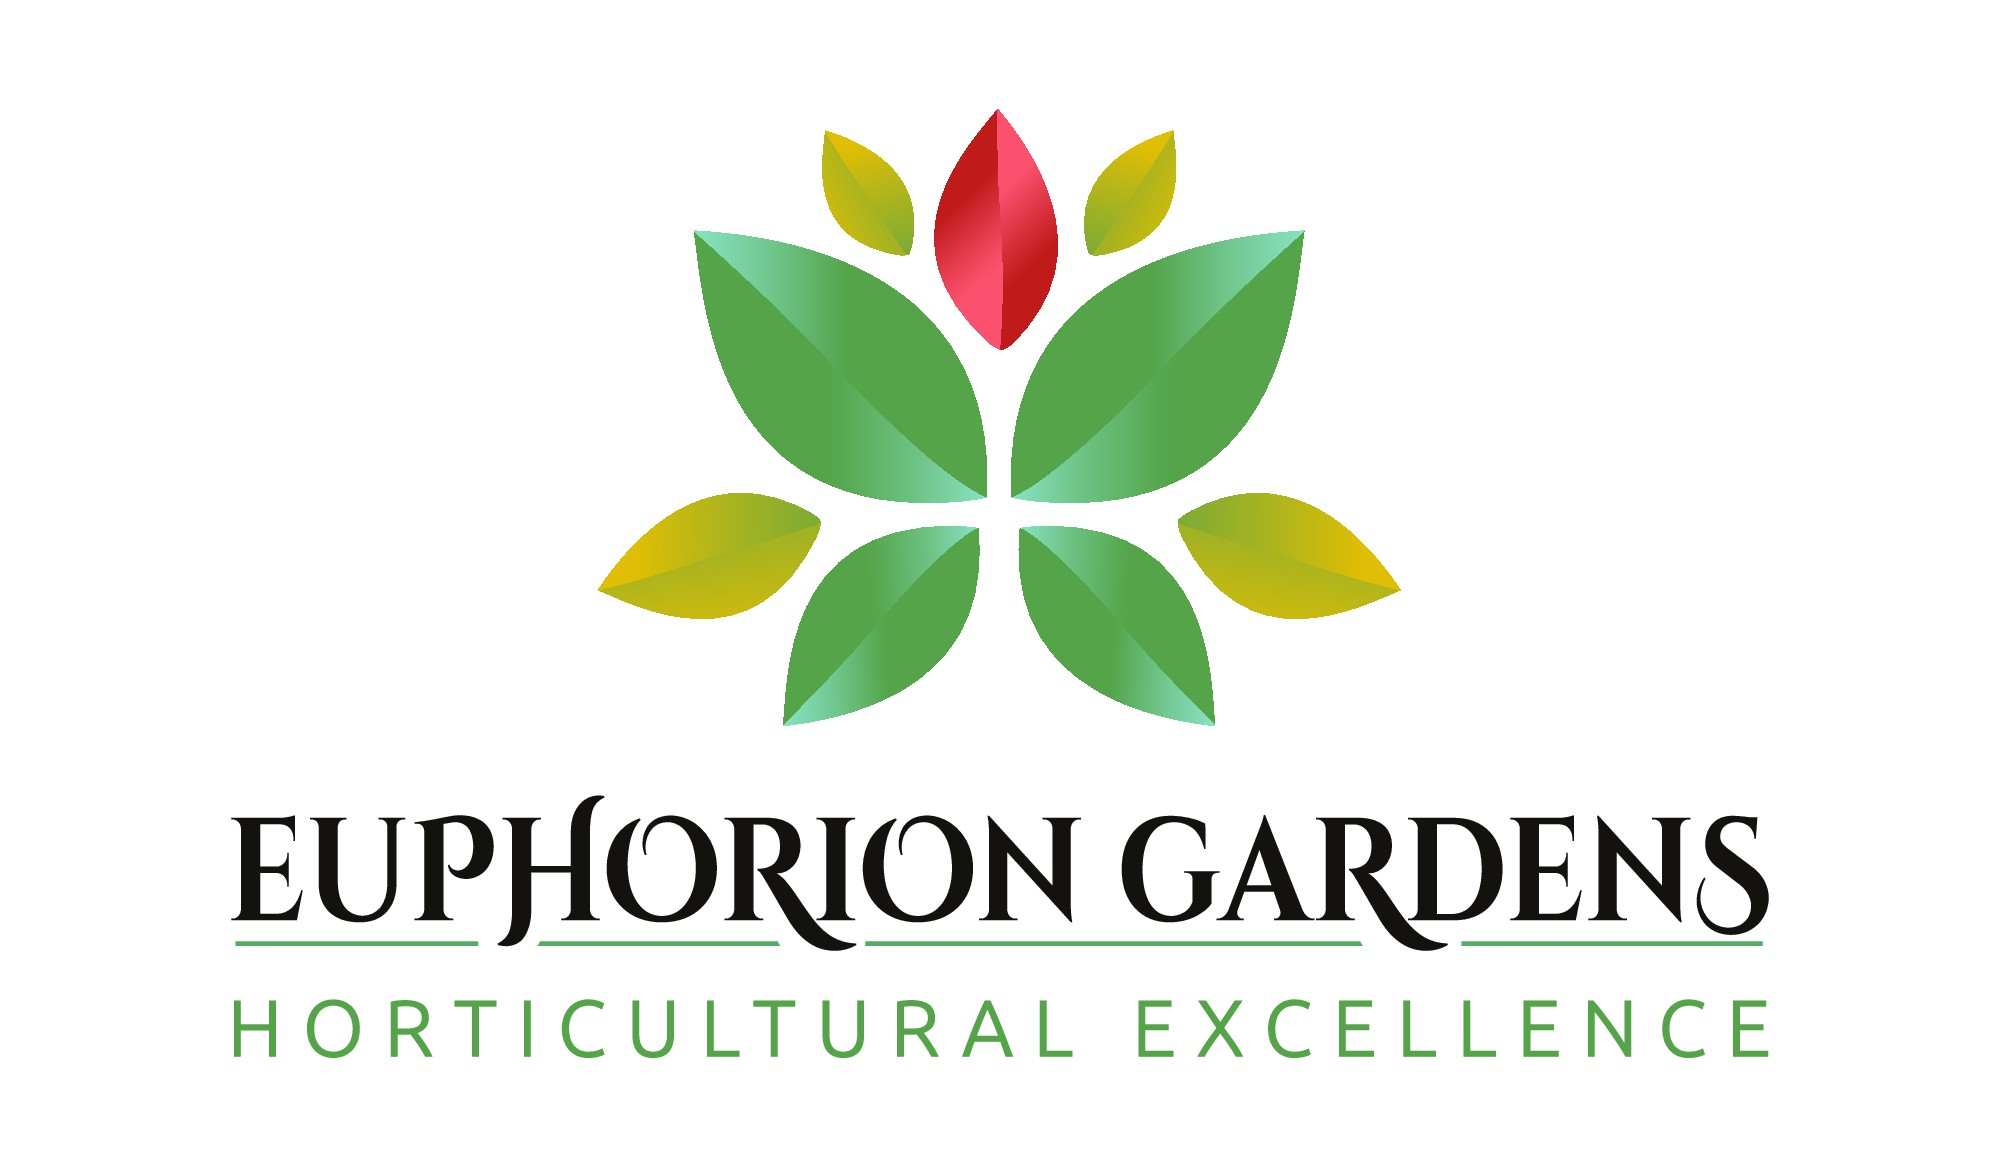 Modern, abstract representation of a butterfly for a gardening business logo